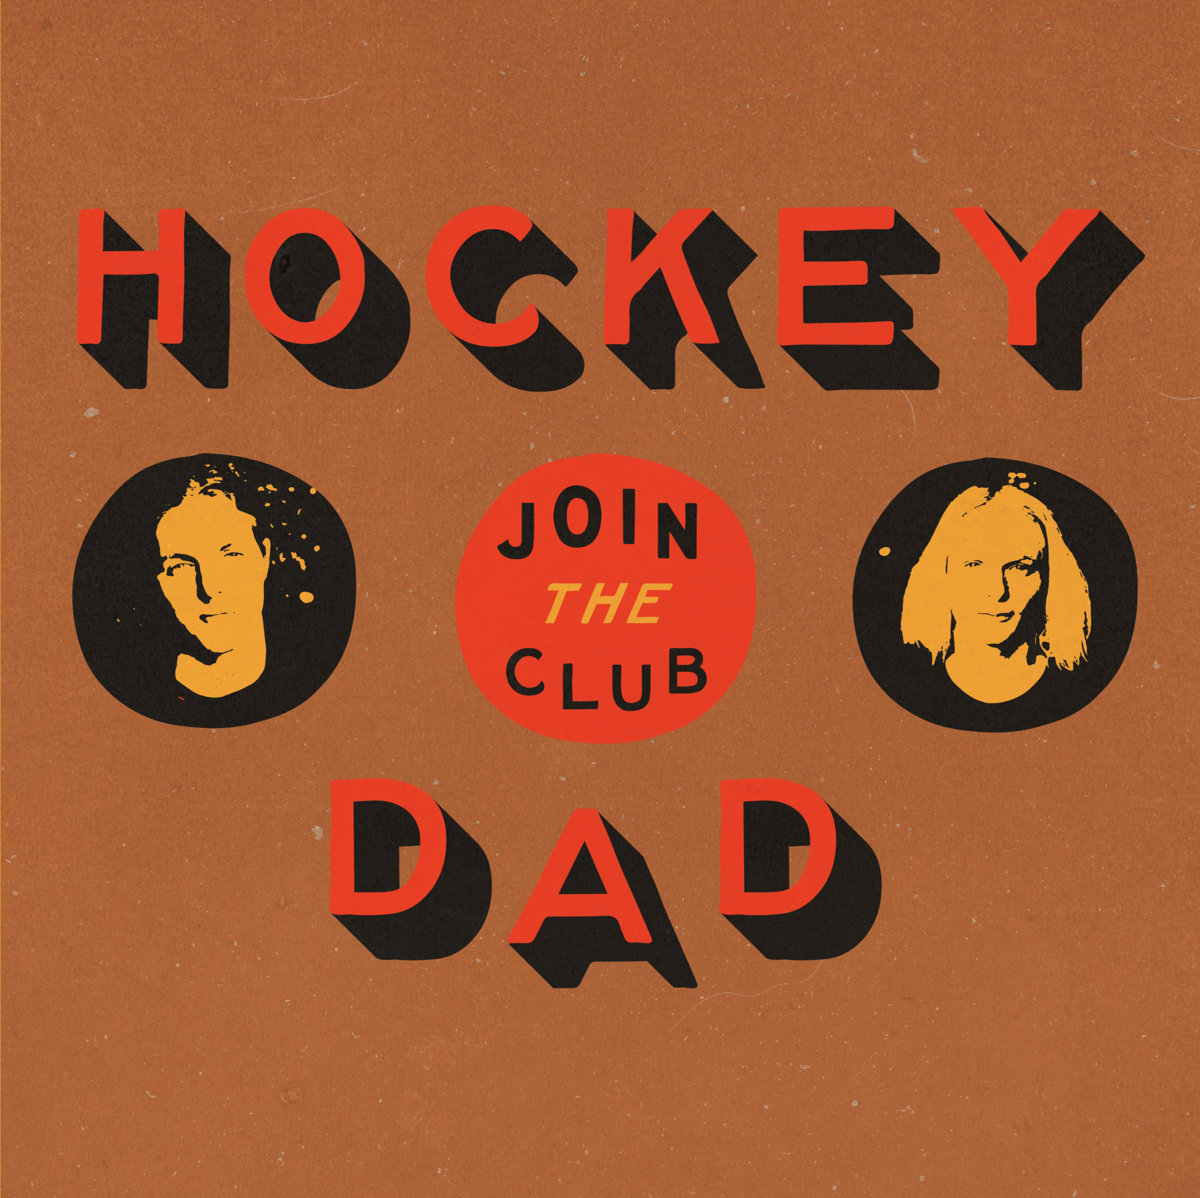 Join The Club Hockey Dad